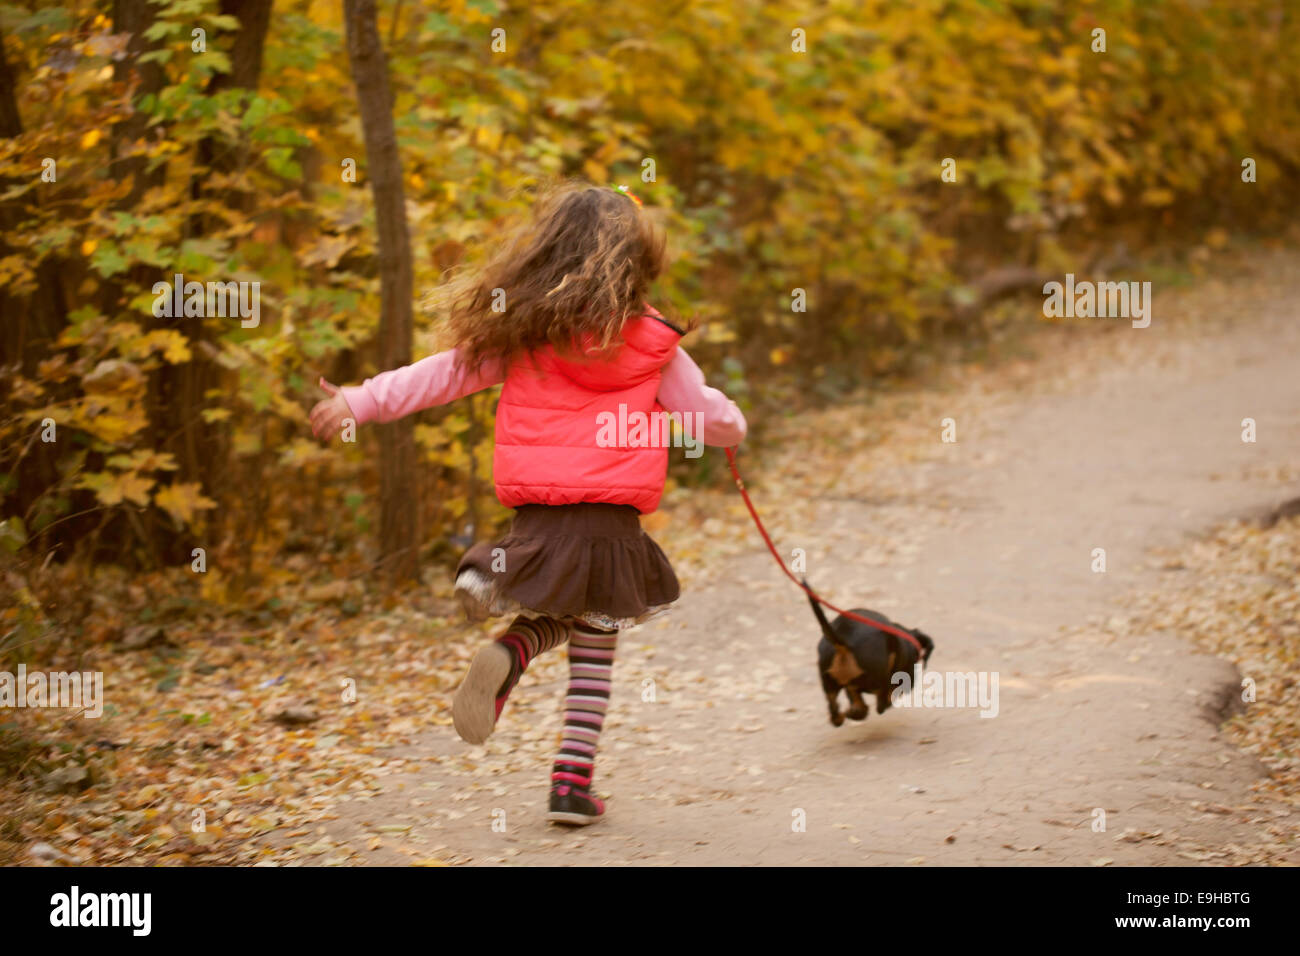 Little kid running and walking with a dachshund puppy. Love to animals concept - Stock Image